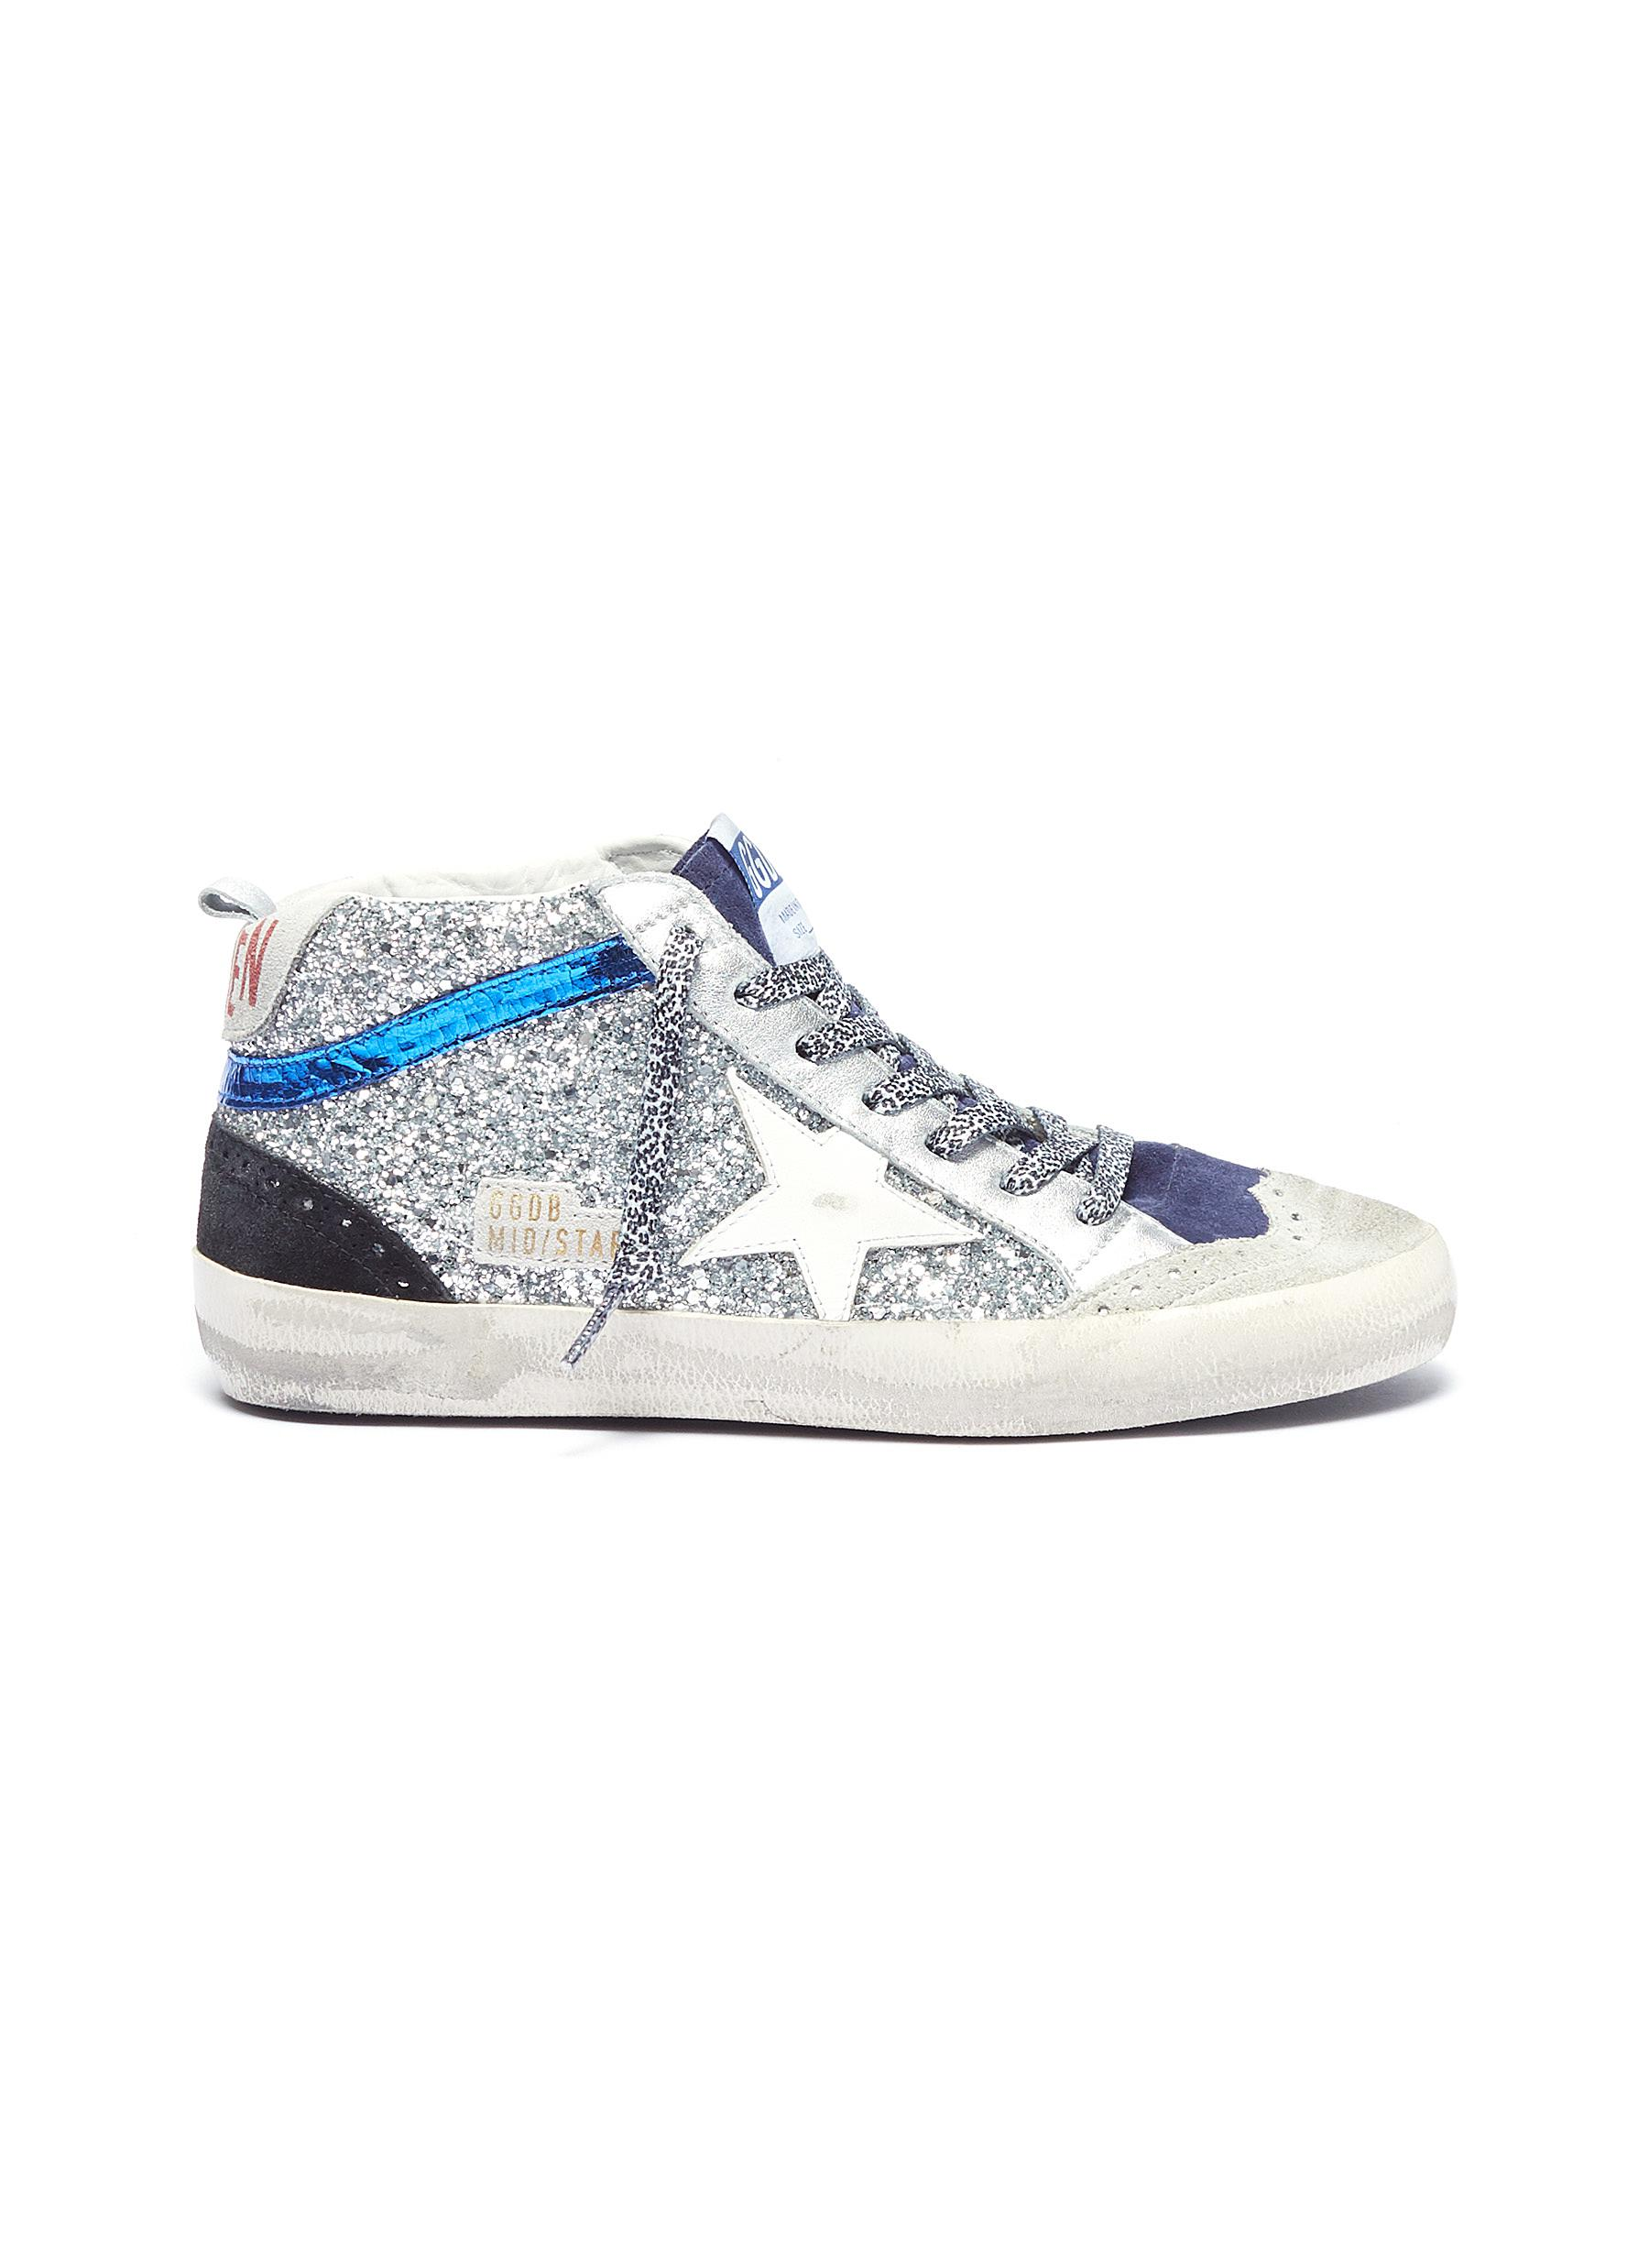 bca80971783b Golden Goose.  Mid Star  suede panel glitter coated leather sneakers